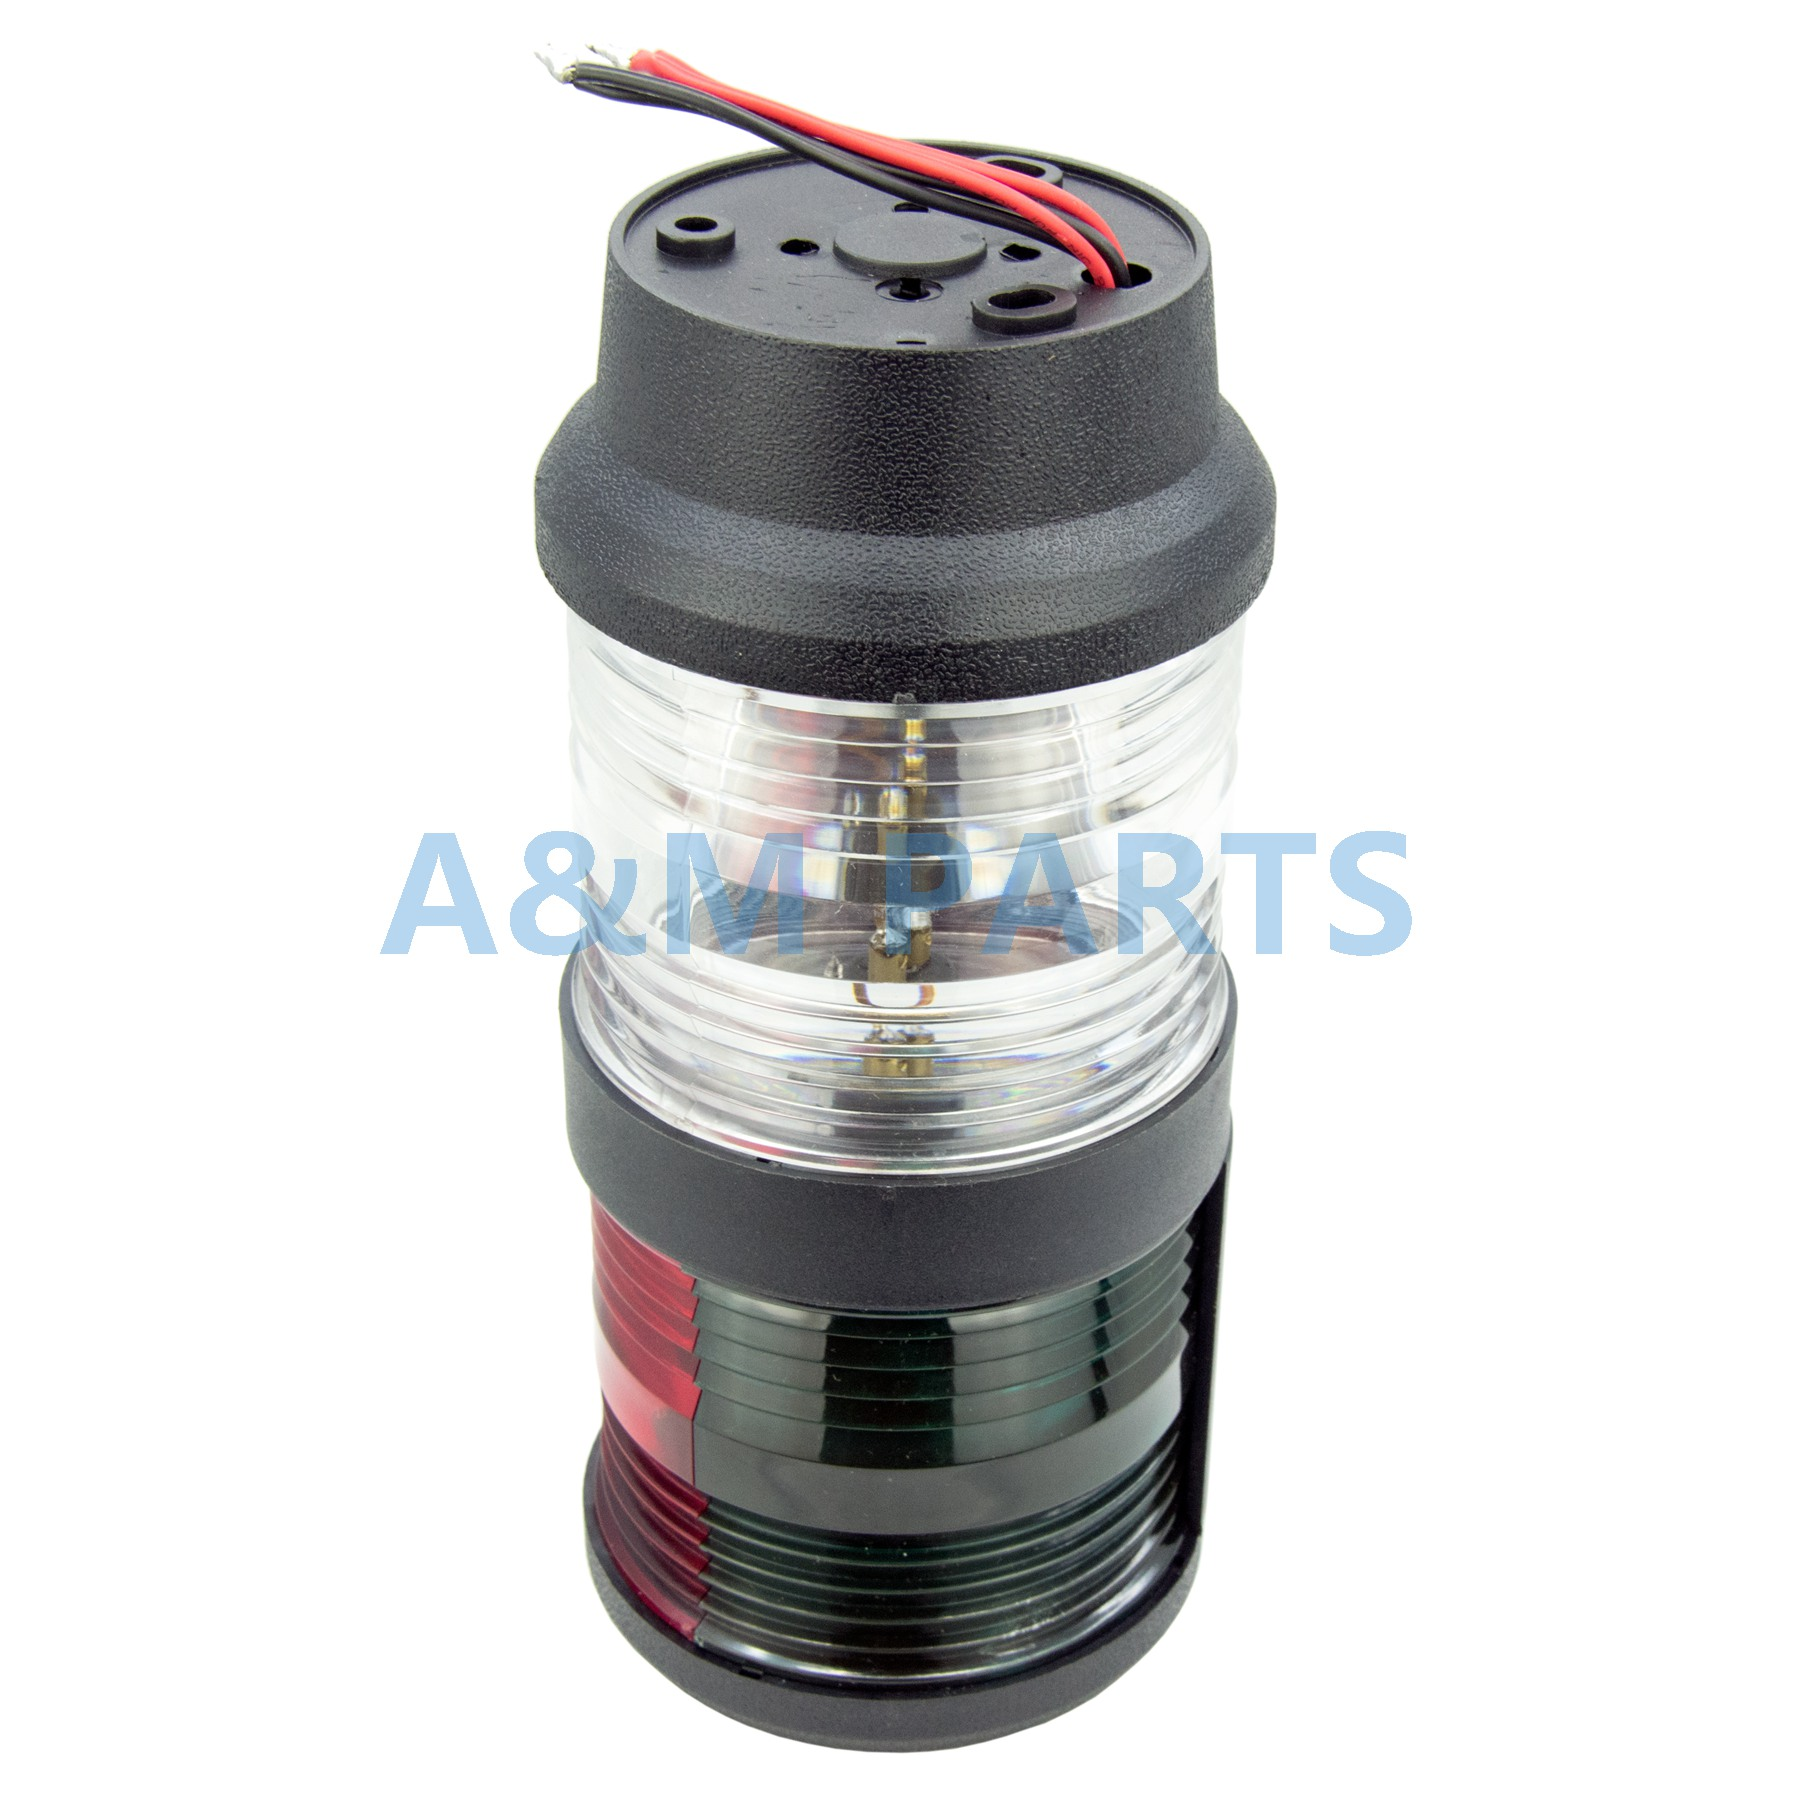 LED Bi Color & All Round Anchor Light - Boat Marine Navigation Masthead Light For Sailboat